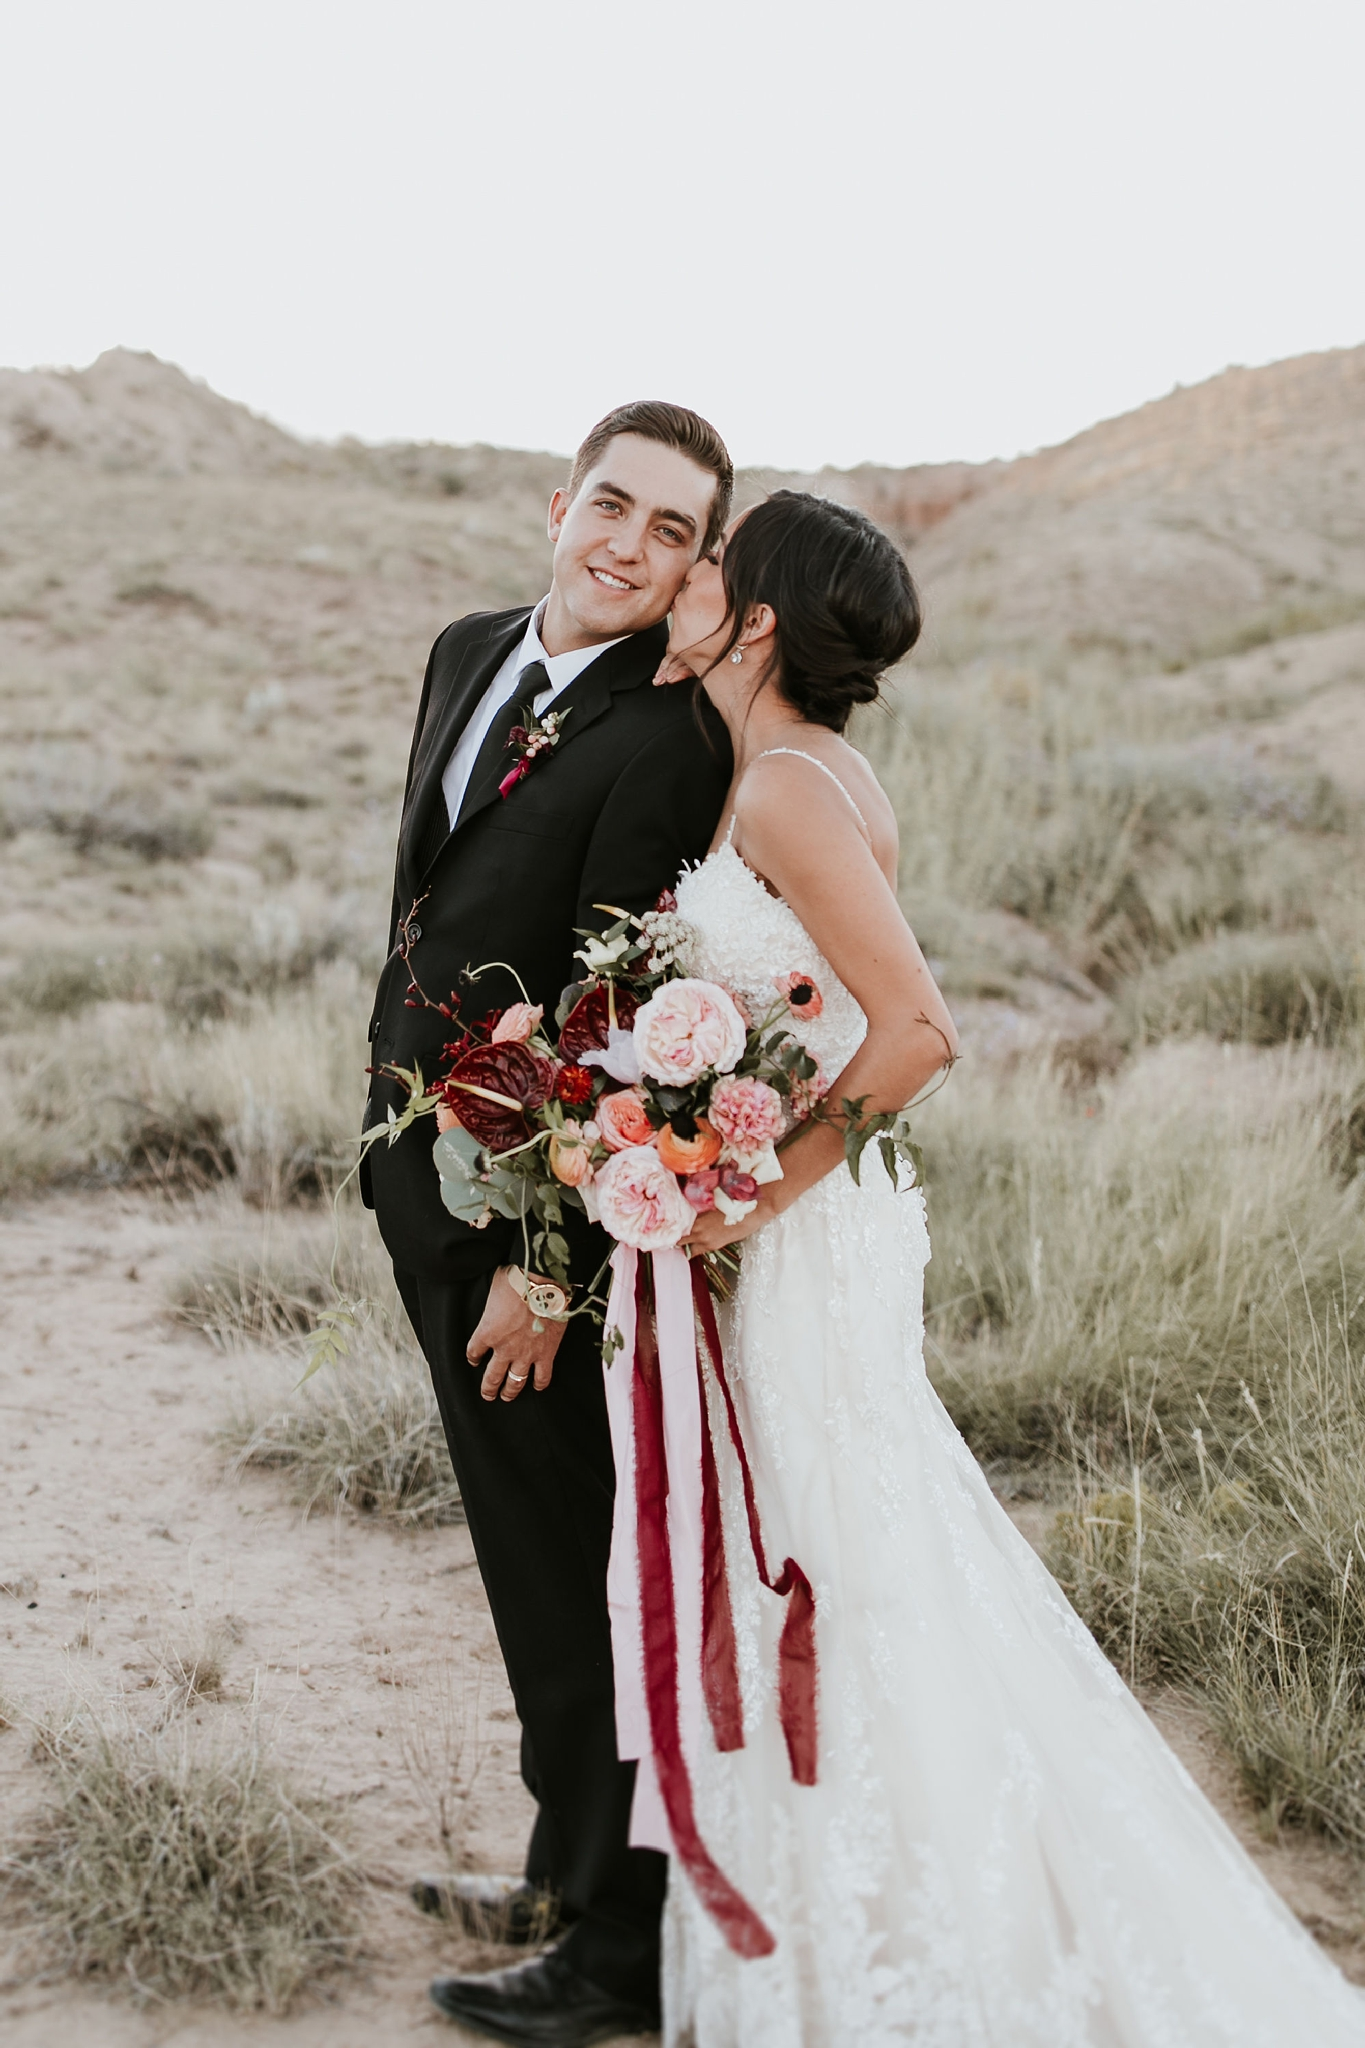 Alicia+lucia+photography+-+albuquerque+wedding+photographer+-+santa+fe+wedding+photography+-+new+mexico+wedding+photographer+-+new+mexico+florist+-+wedding+florist+-+renegade+floral_0003.jpg